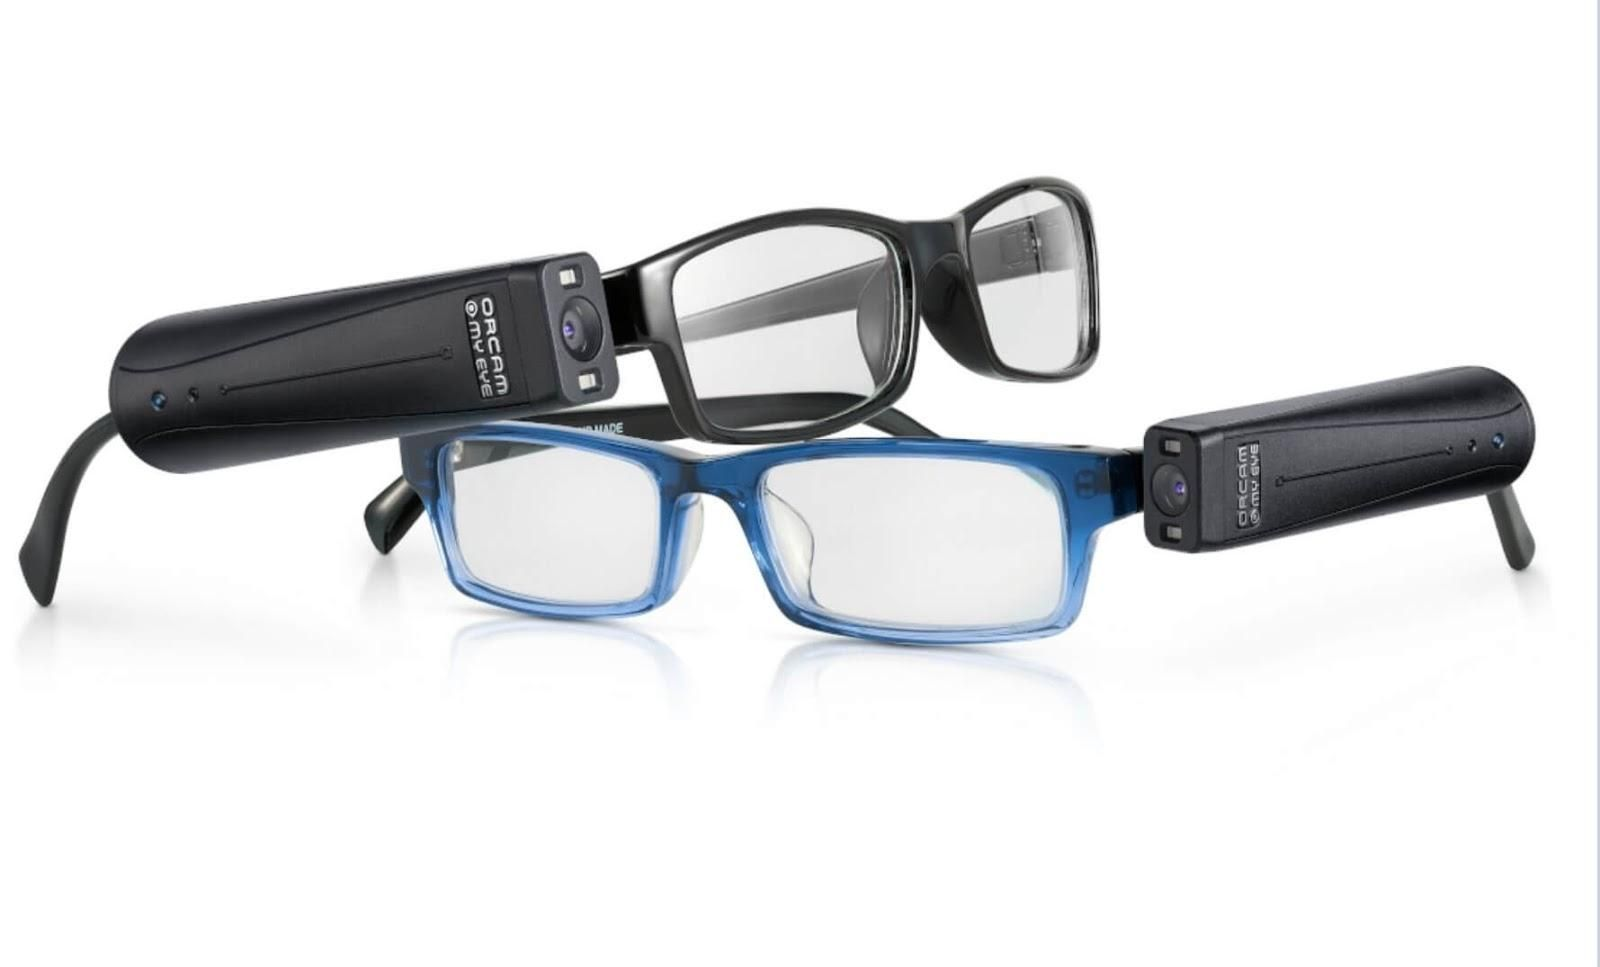 Picture of the Orcam Assistive Technology Glasses